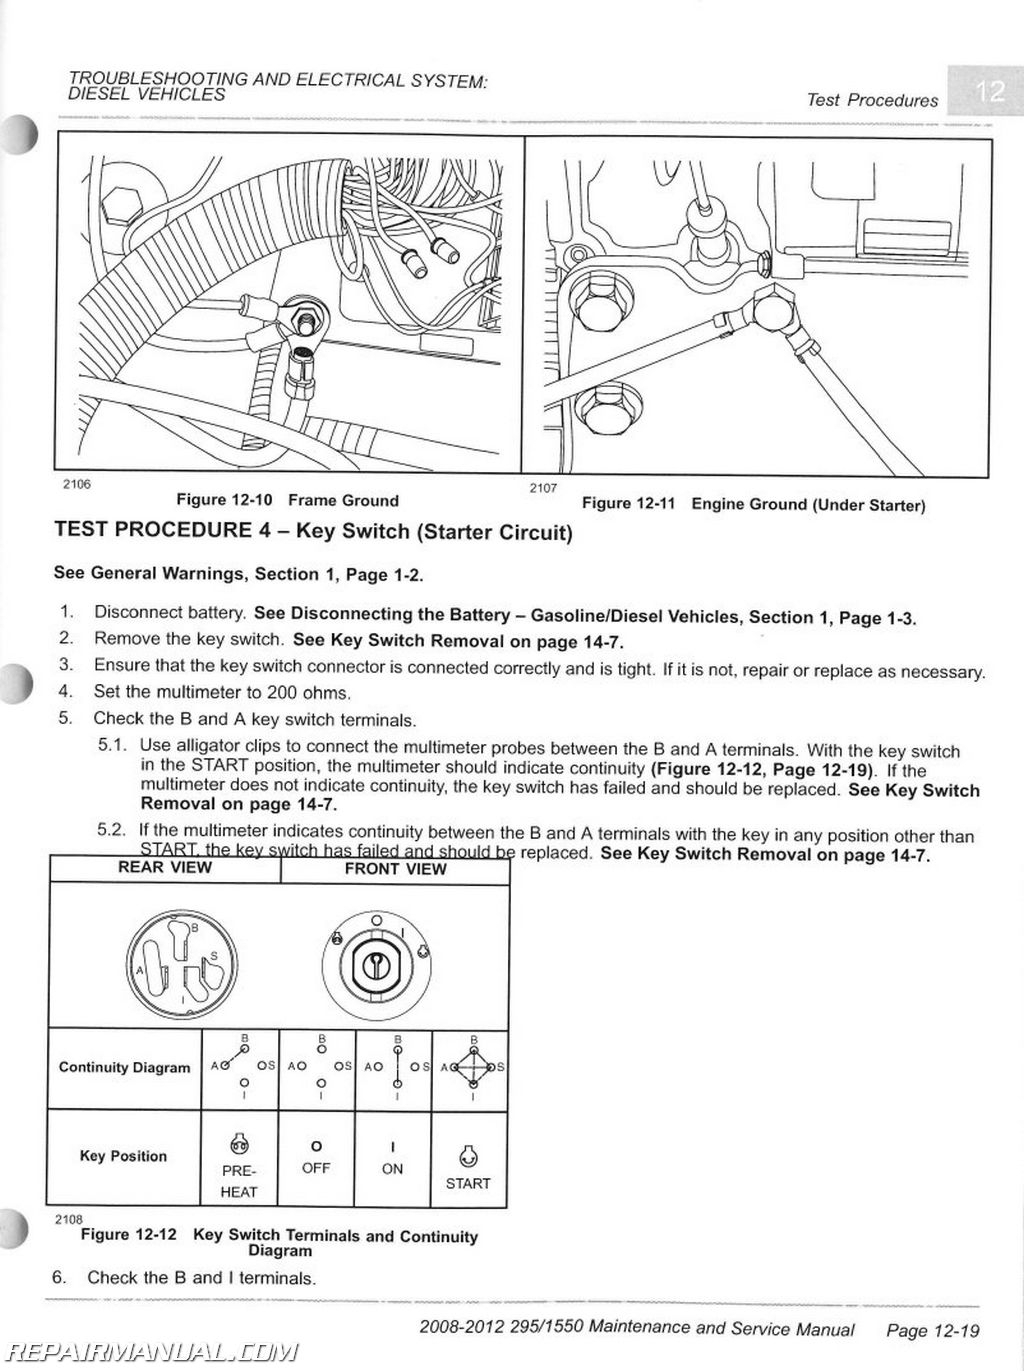 Ingersoll Rand Club Car Wiring Diagram On Ingersoll Images. free ...